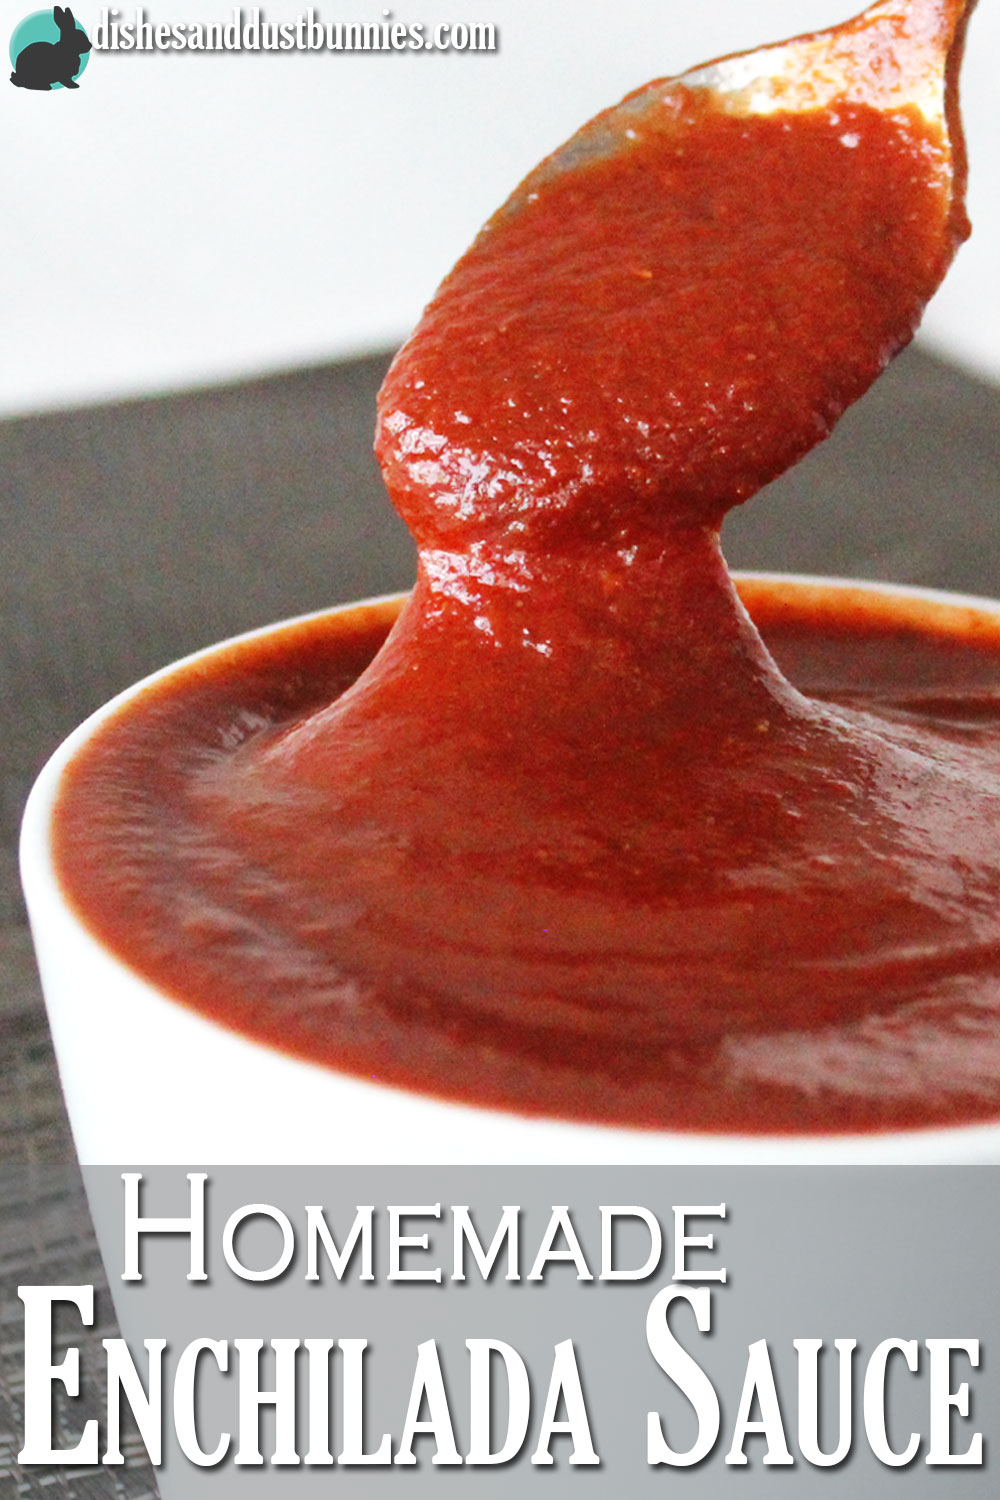 How to make Homemade Enchilada Sauce from Dishes & Dust Bunnies